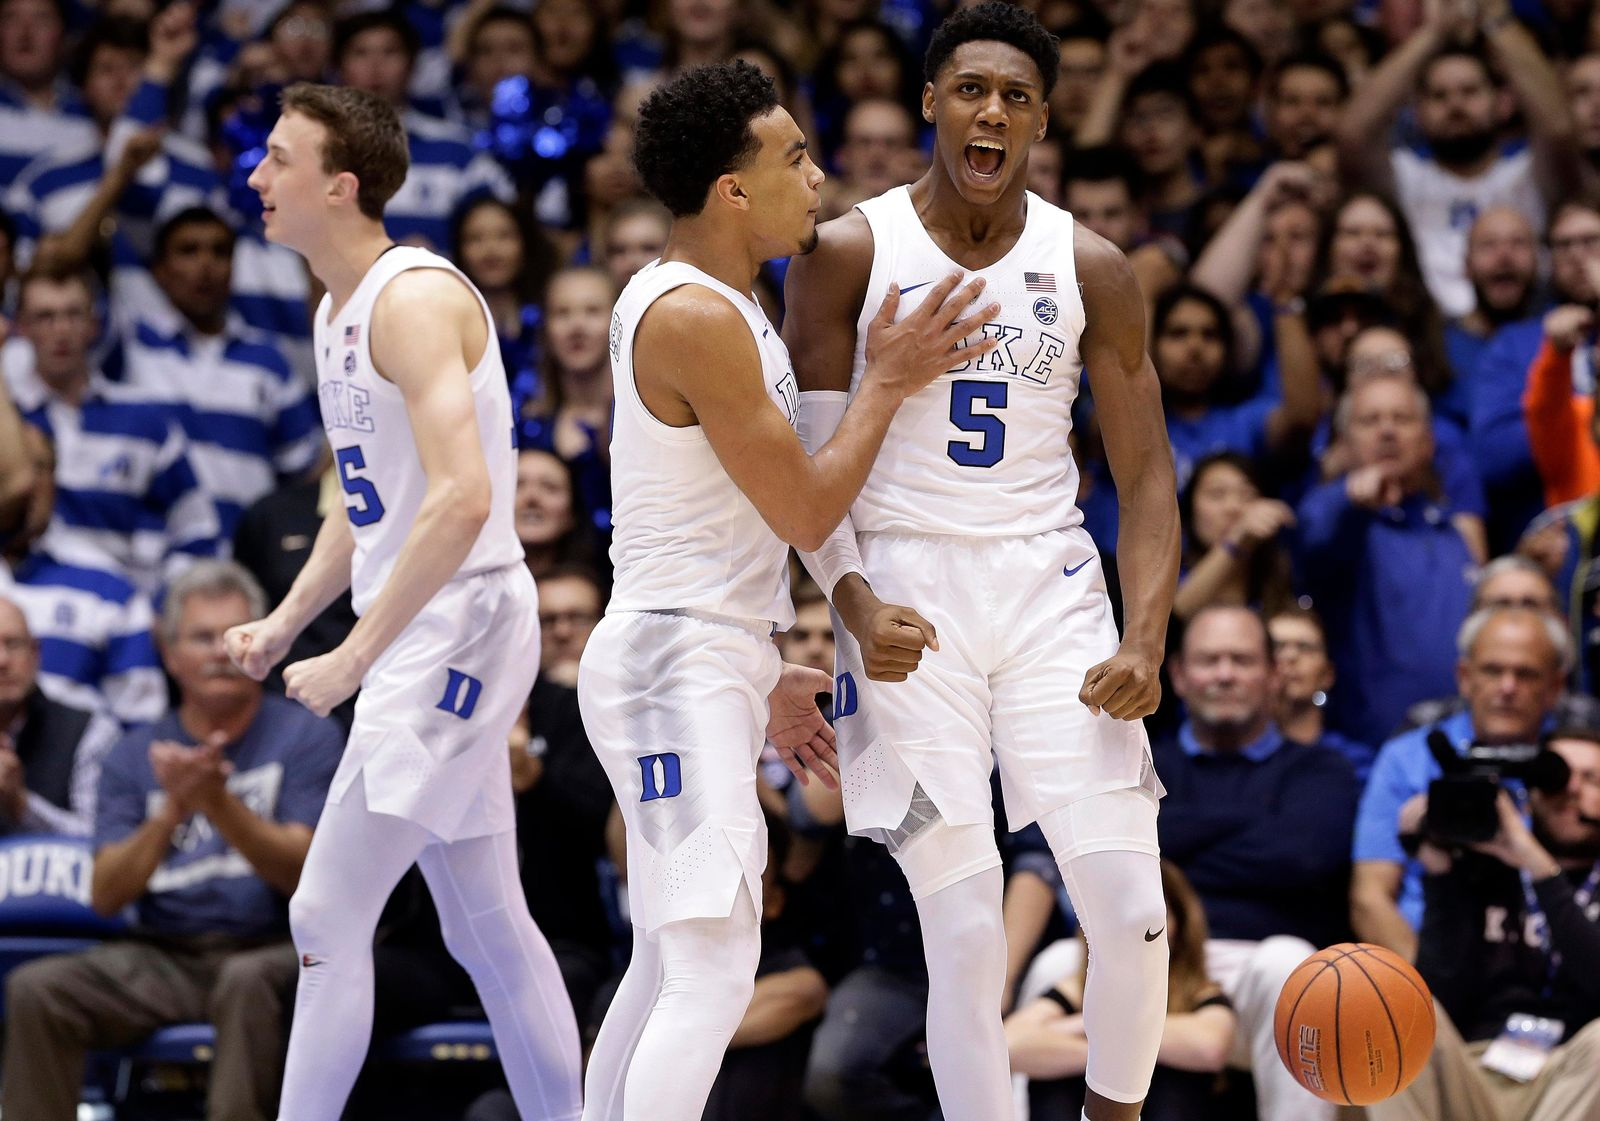 Duke's RJ Barrett (5) and Tre Jones react with Alex O'Connell, left, following a play against Wake Forest during the second half of an NCAA college basketball game in Durham, N.C., Tuesday, March 5, 2019. Duke won 71-70. (AP Photo/Gerry Broome)